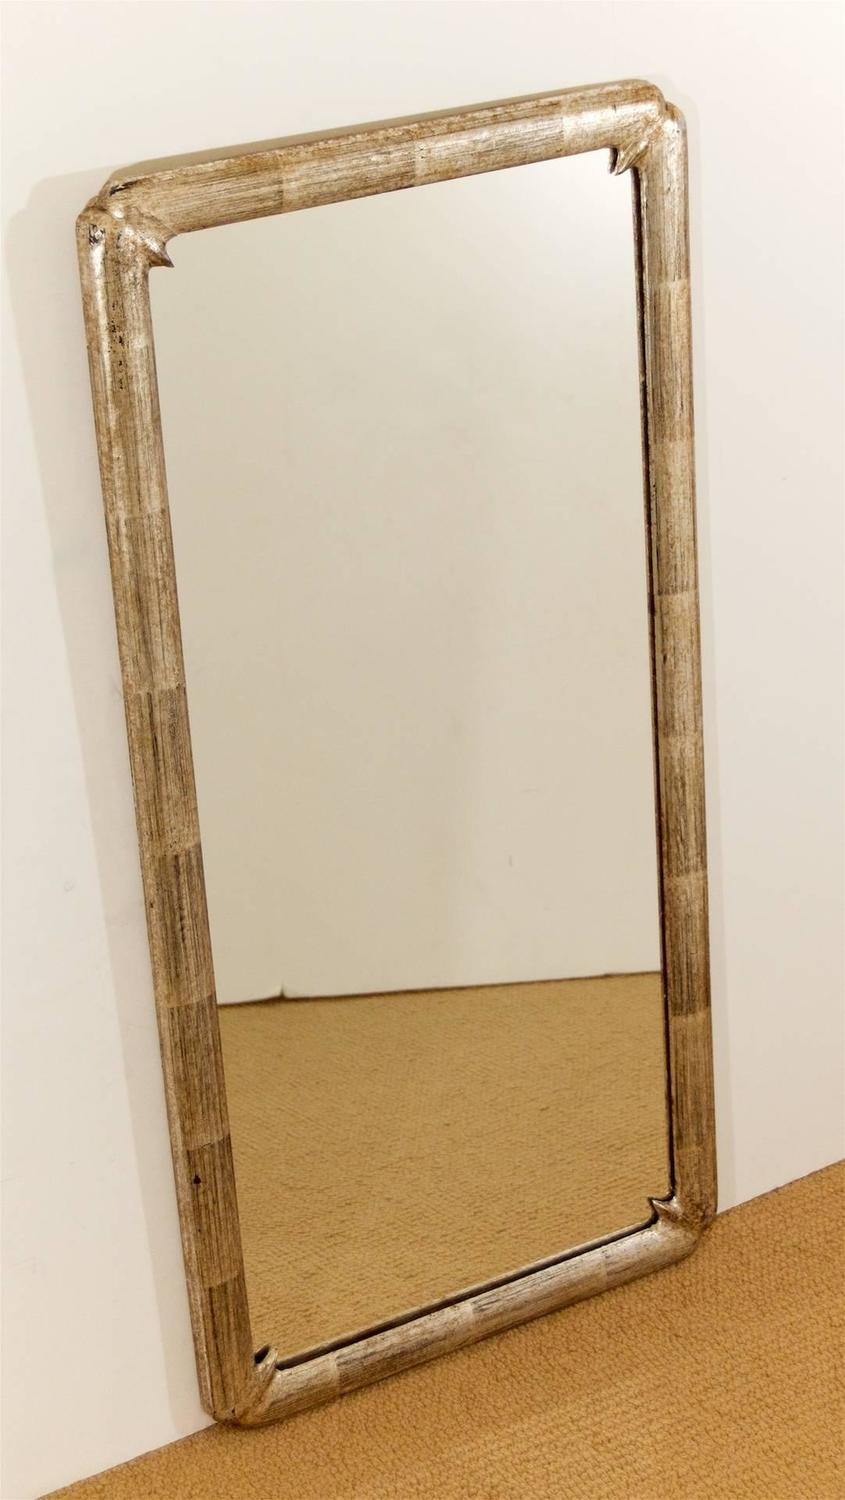 silver leaf framed mirror for sale at 1stdibs